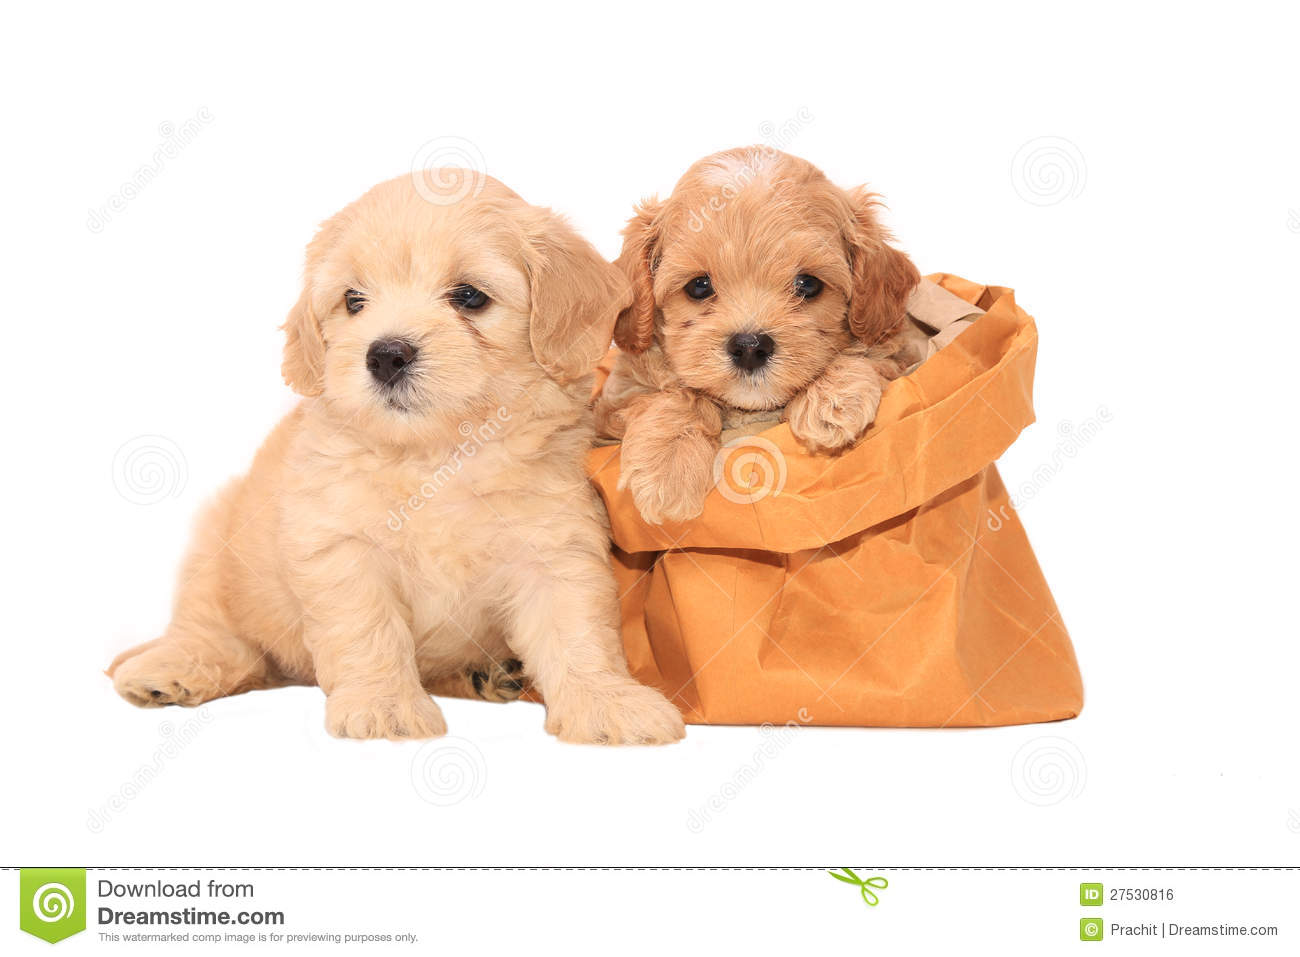 Poodle Puppies In Bag Royalty Free Stock Image